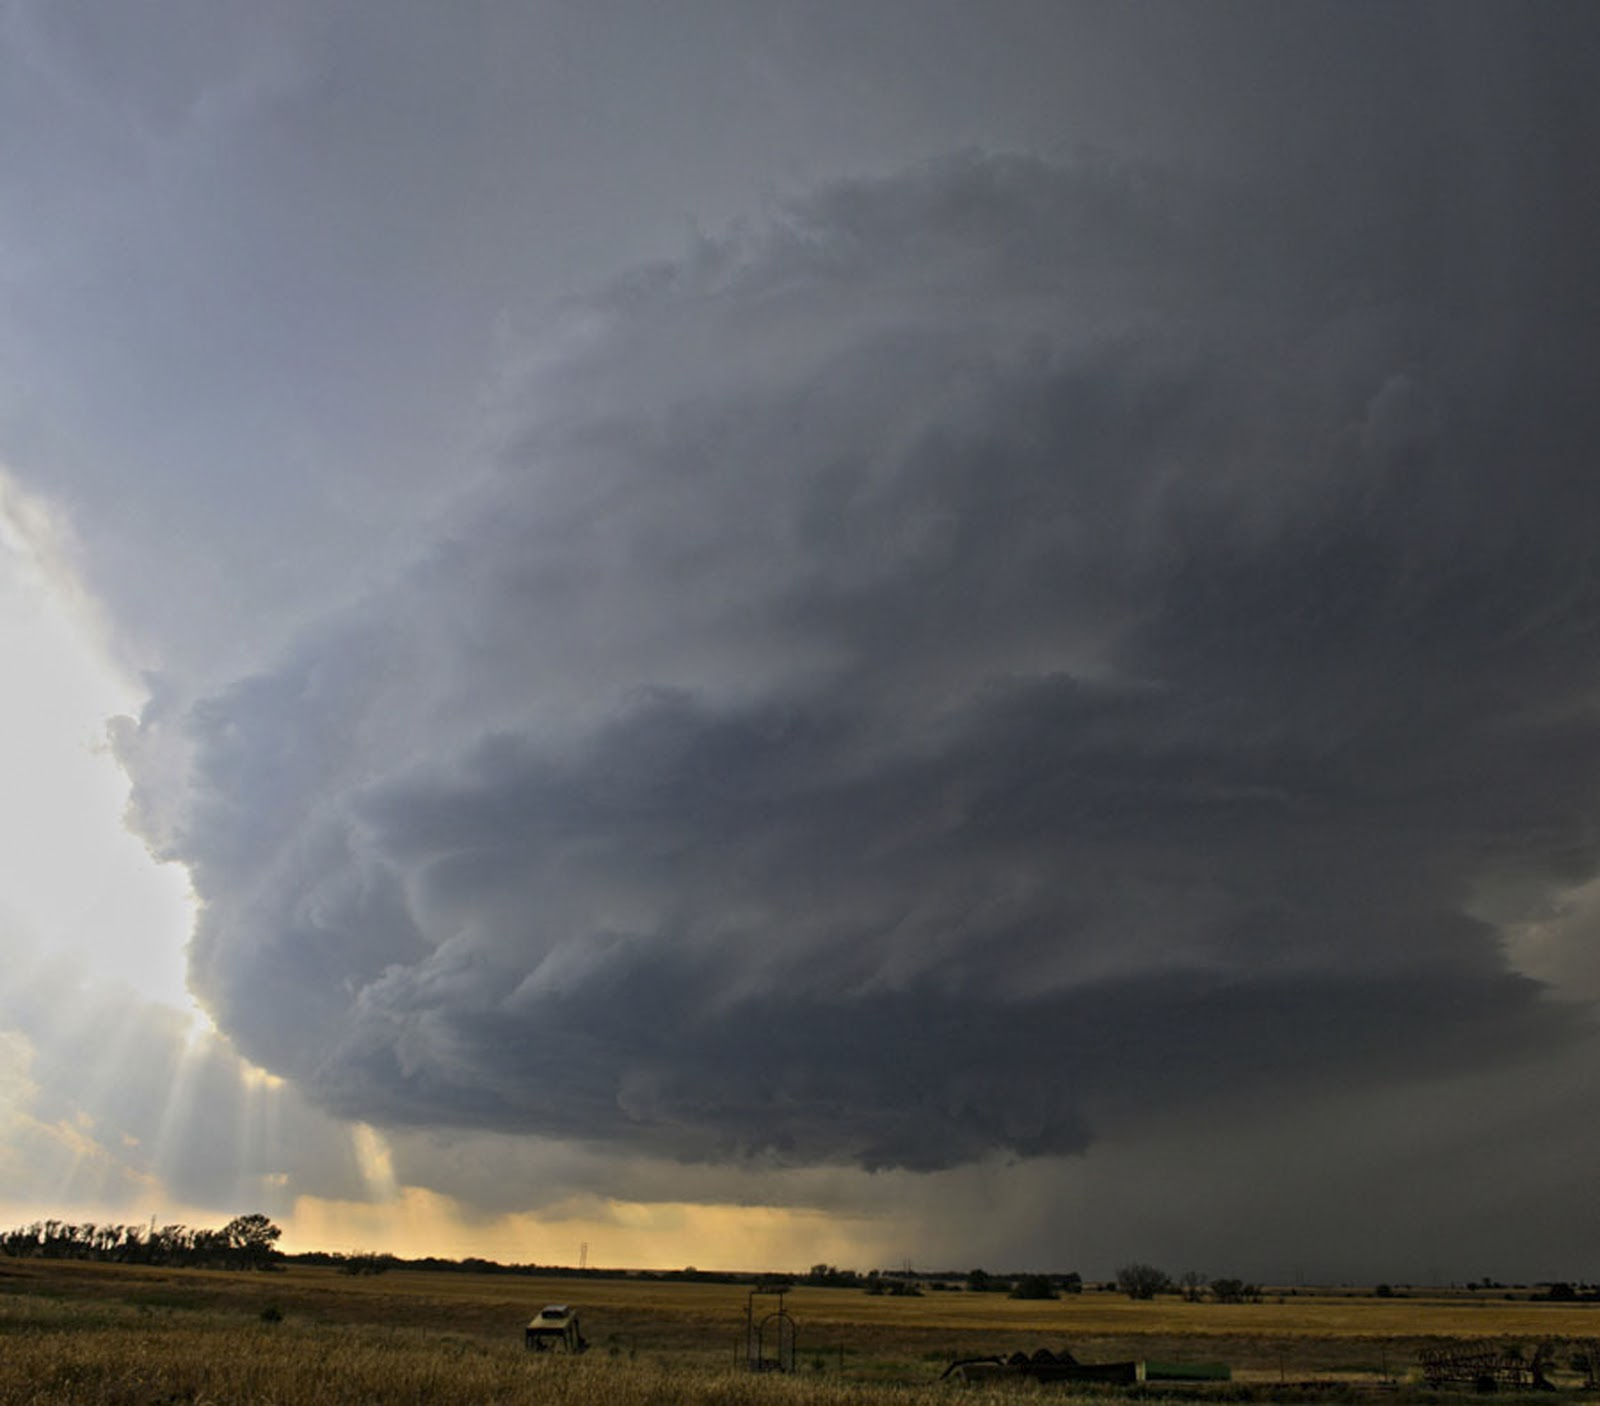 Tornado Supercell Diagram Whelen 295hfsa1 Wiring Storm Chase Logs Structure Heaven